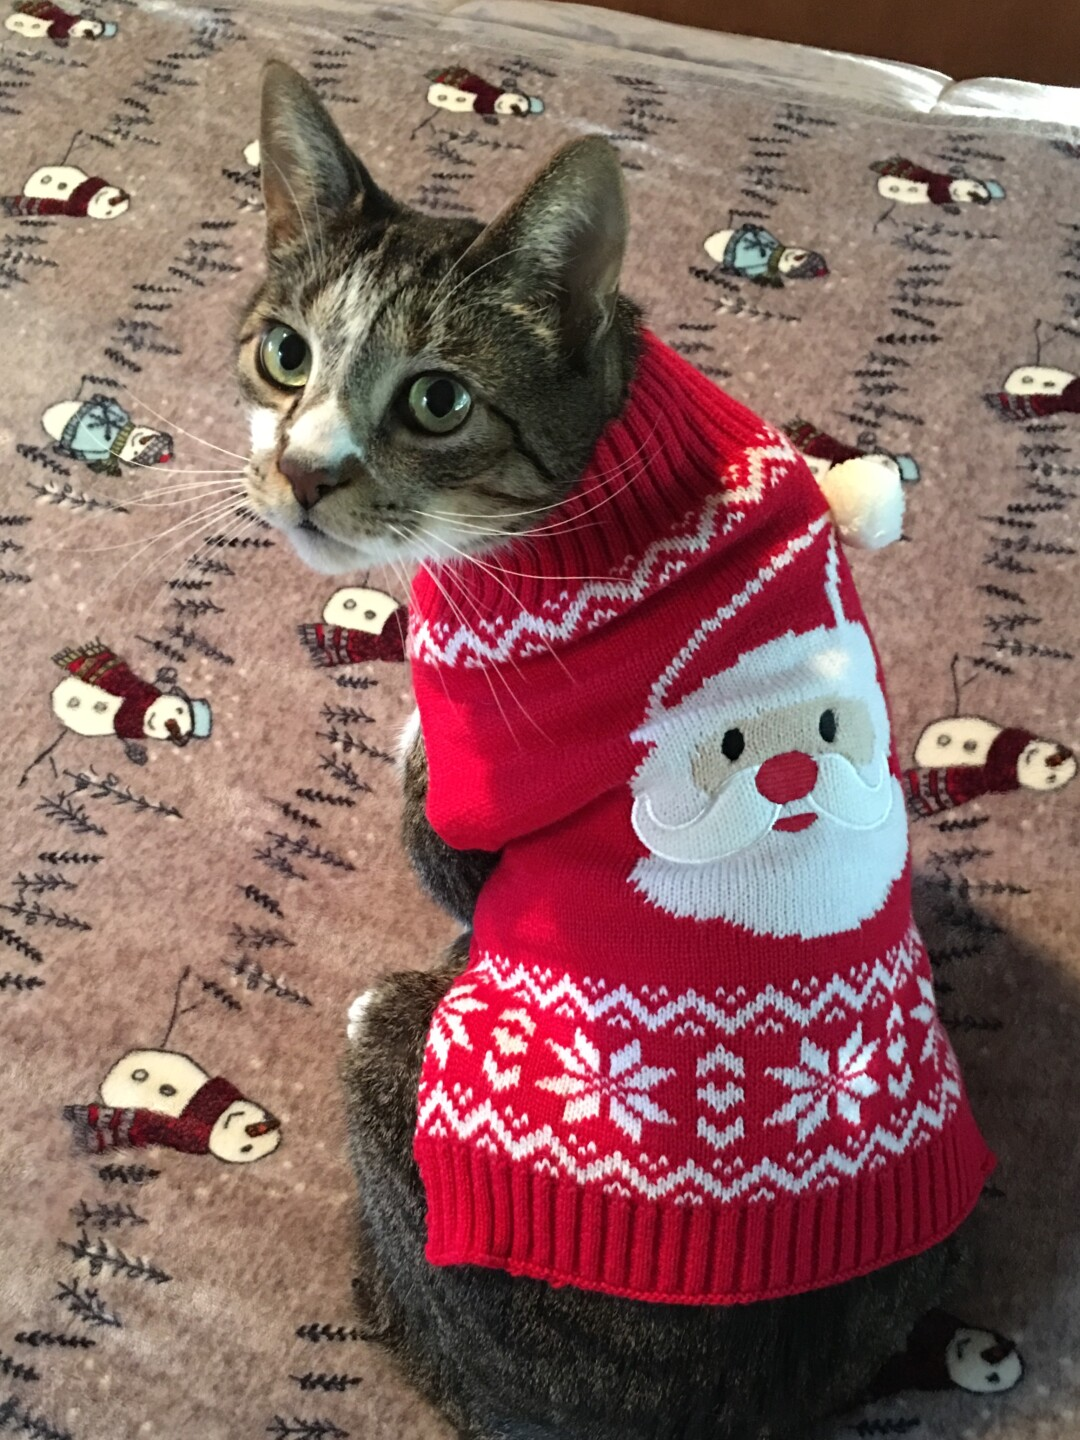 Jasper doesn't think his sweater is ugly 😉 Merry Christmas from Jasper and family!!  💕🐱 🎅🏻 🌲 👼